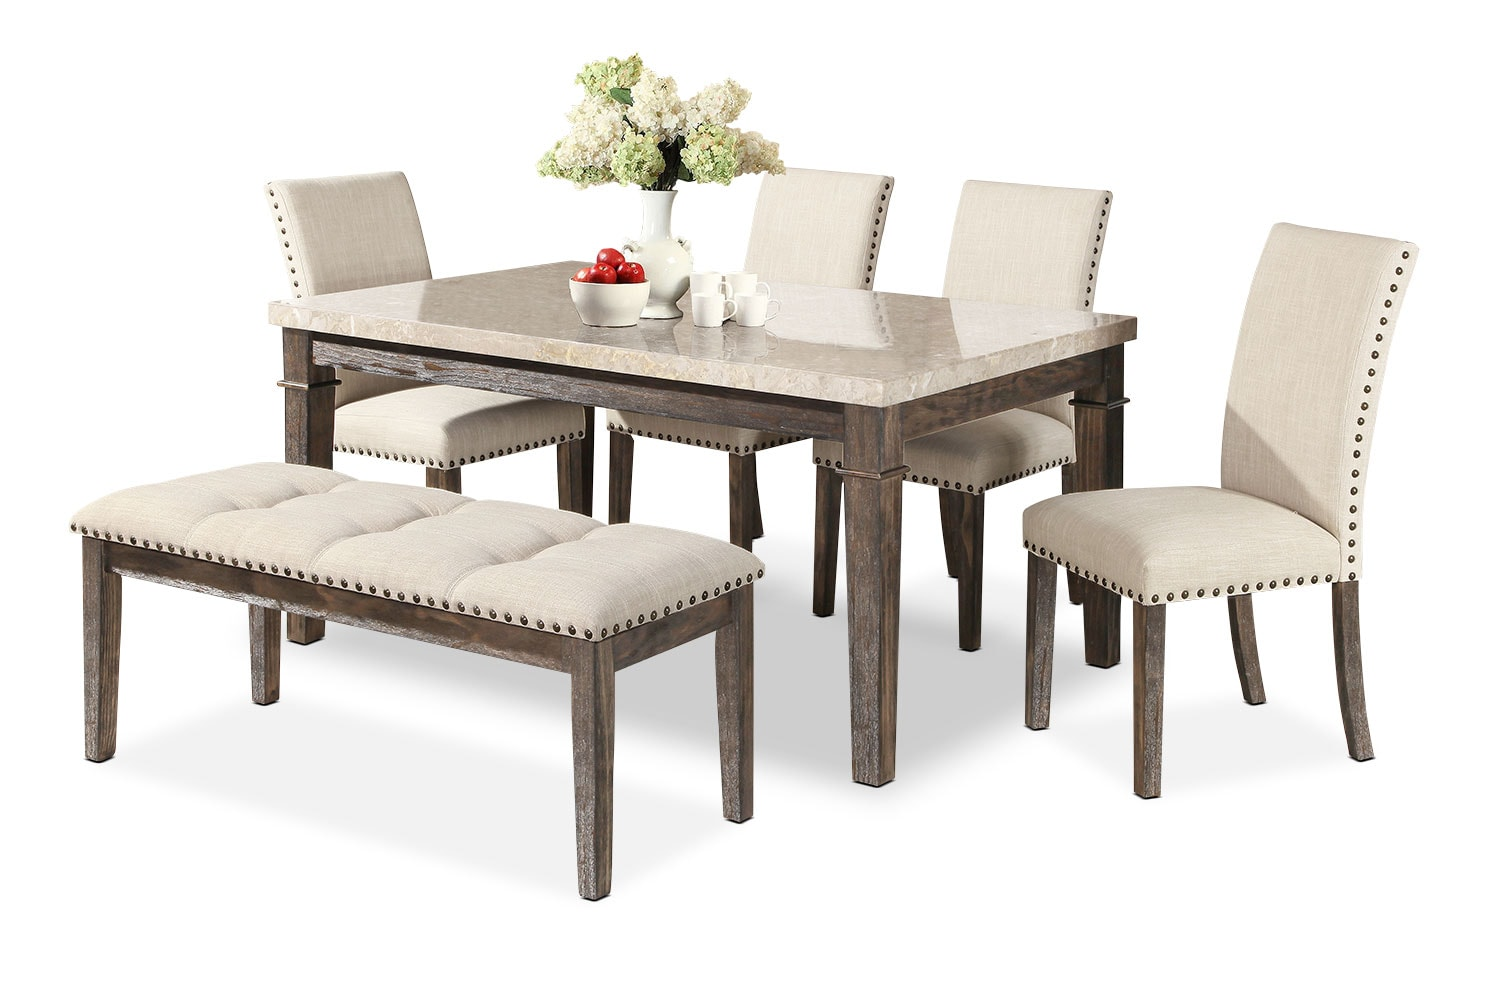 Aldo 6-Piece Dining Package